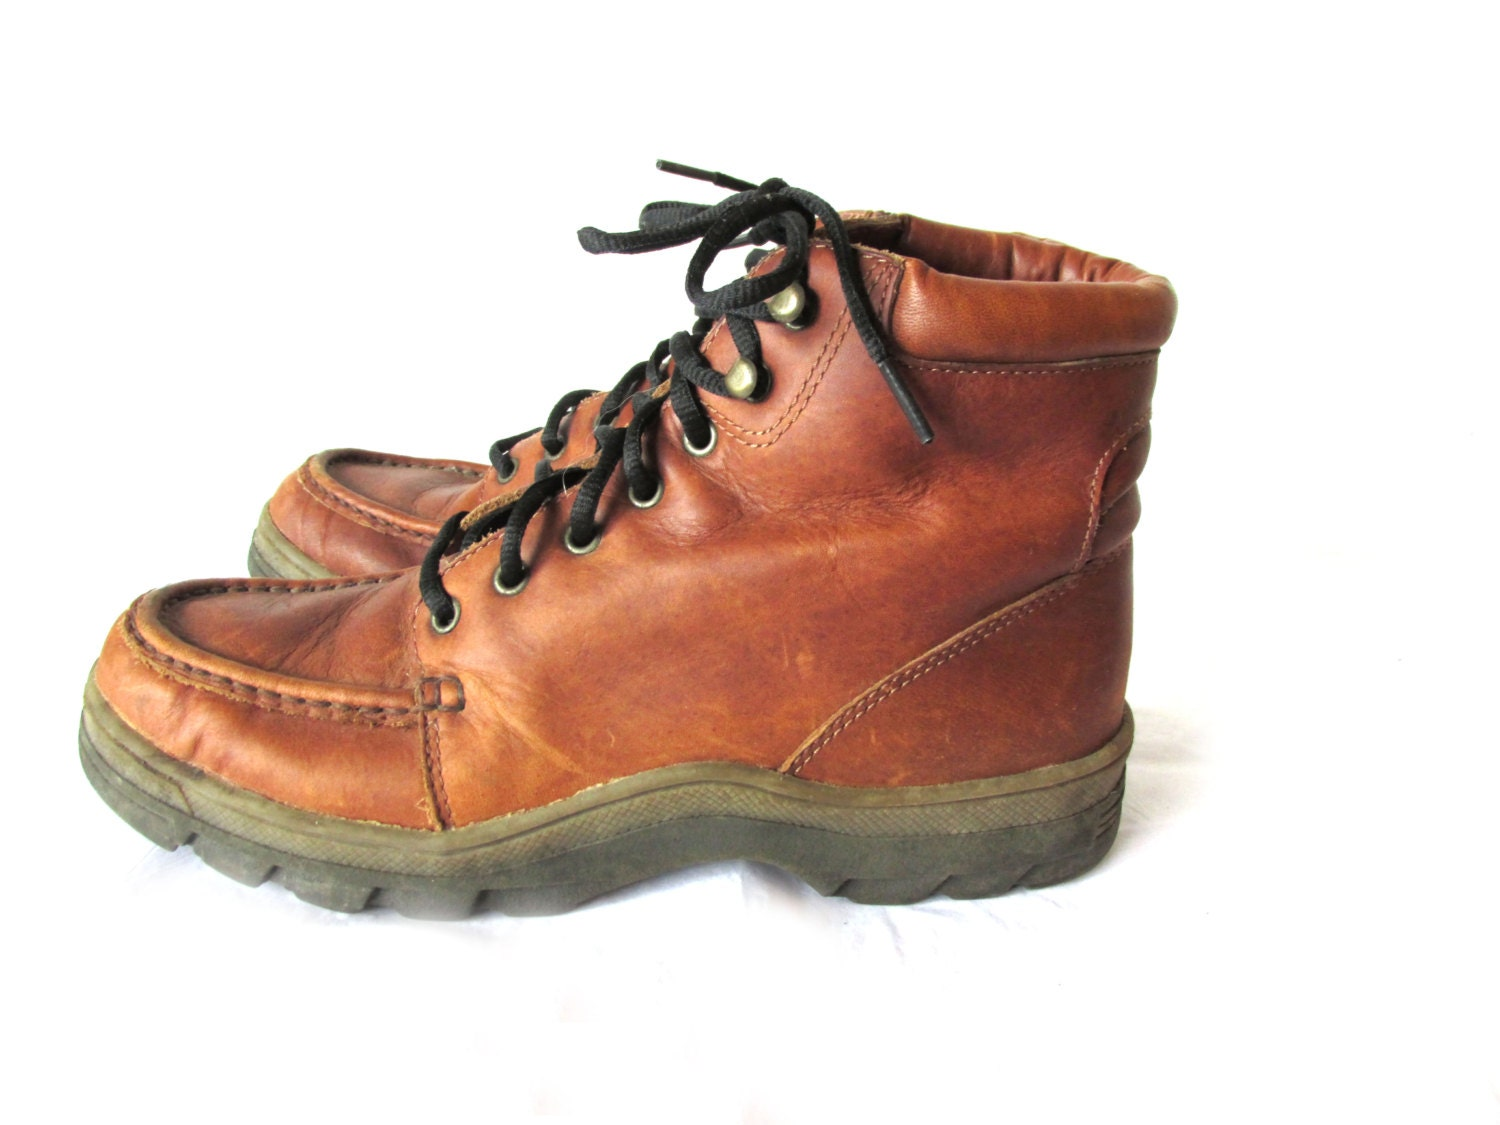 s bass waterproof leather cognac brown boots size